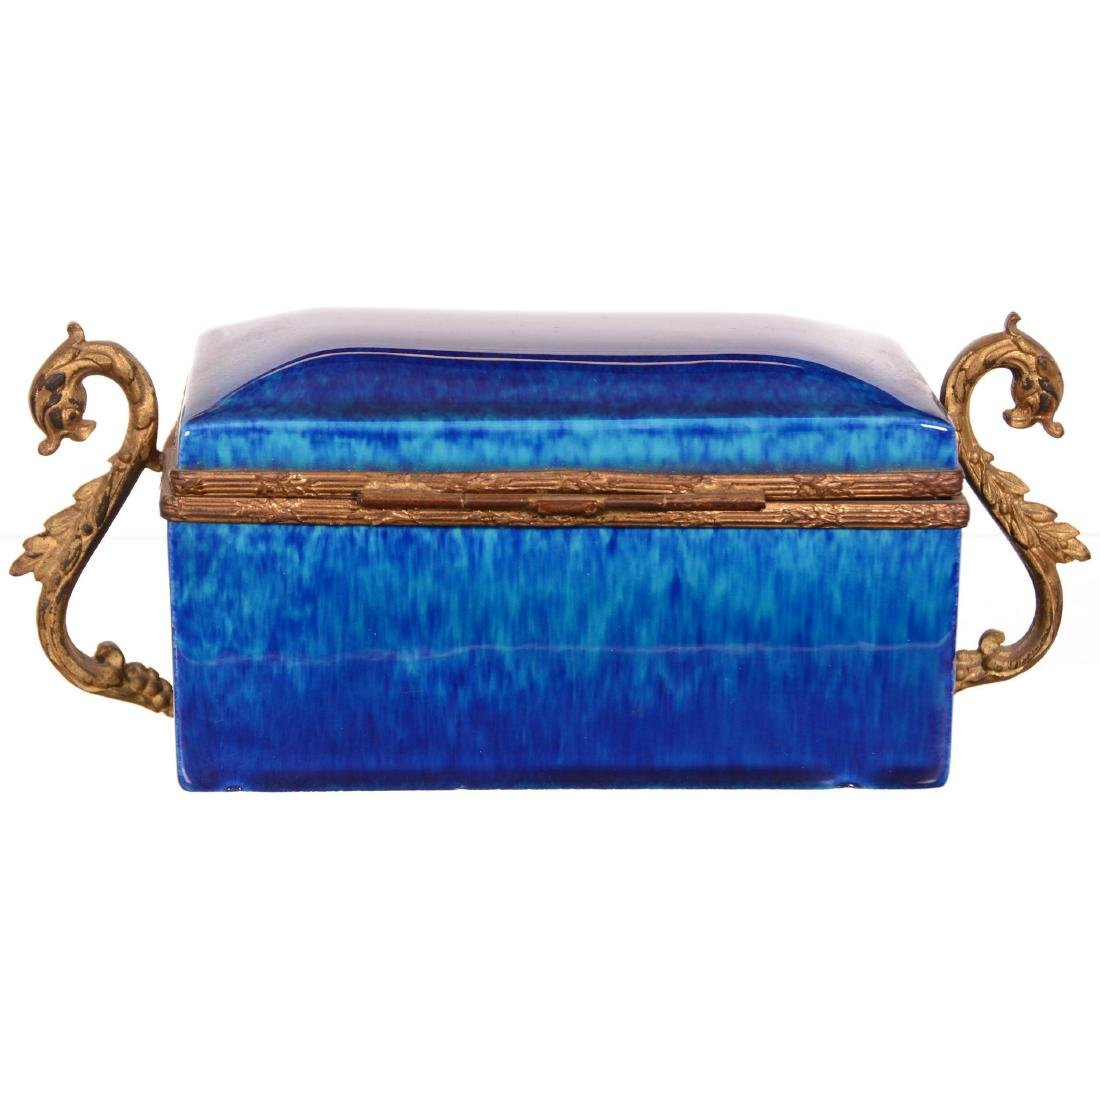 French Faience Pottery Hinged Box - 3